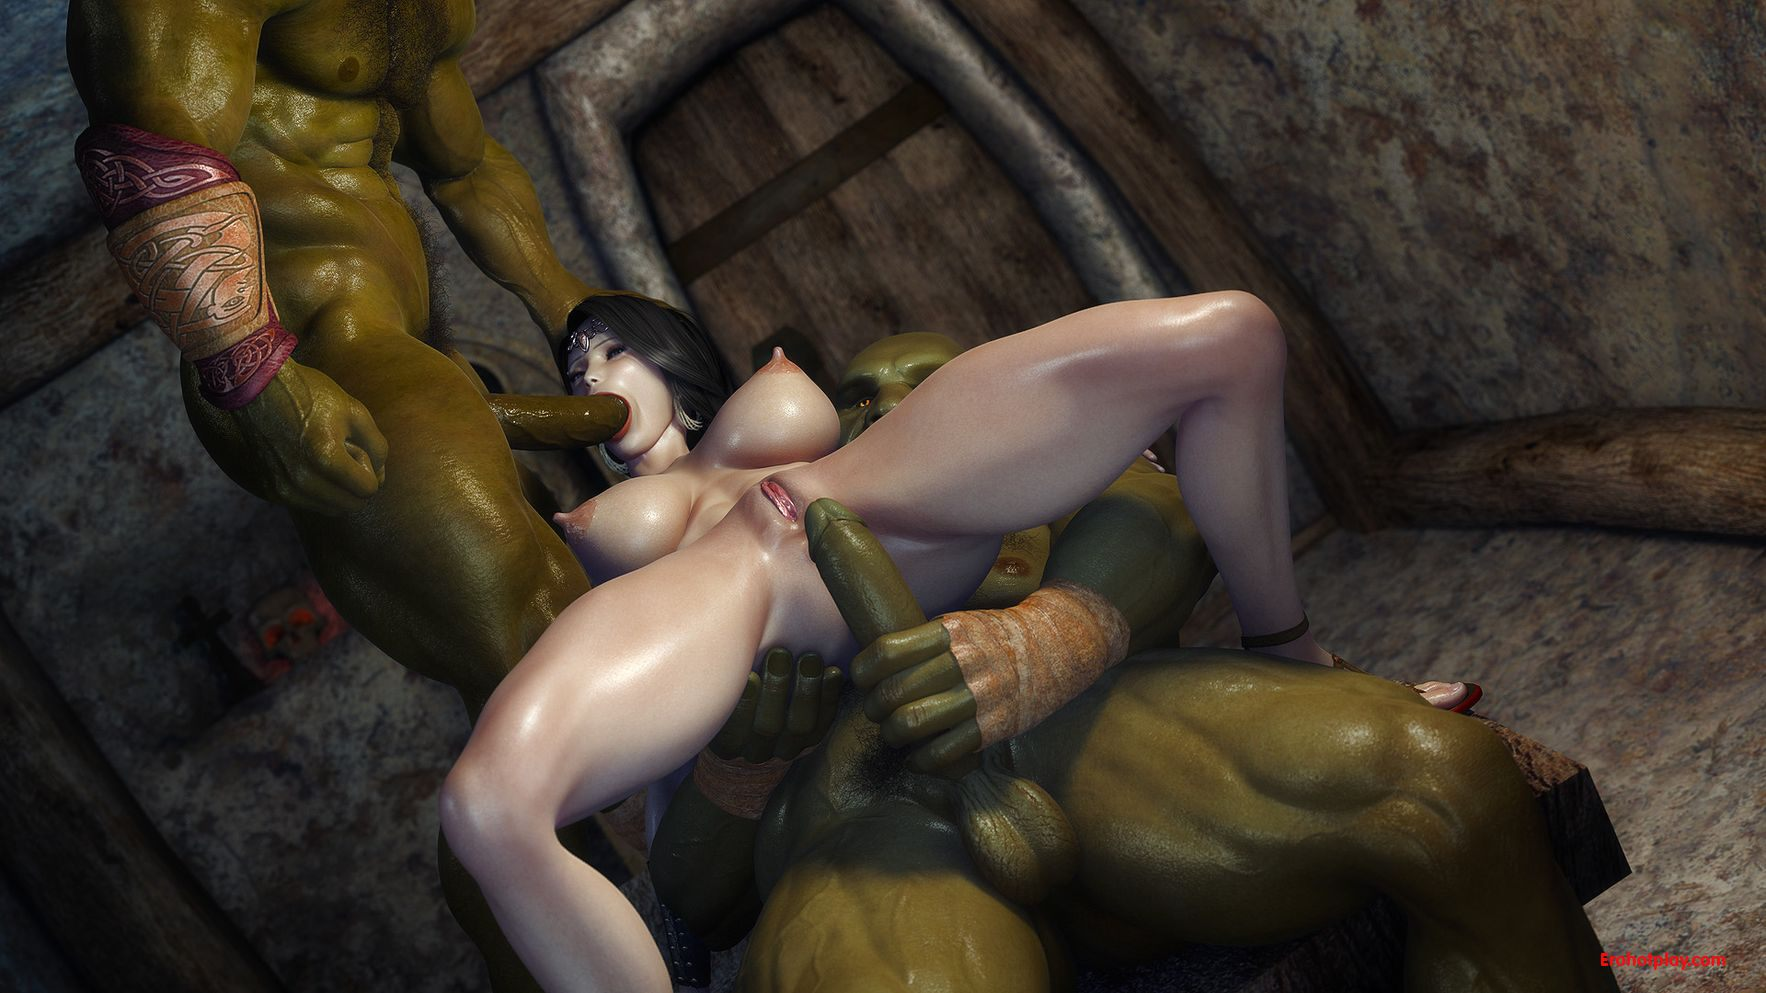 Two orc fuck princess 3d fucks scene